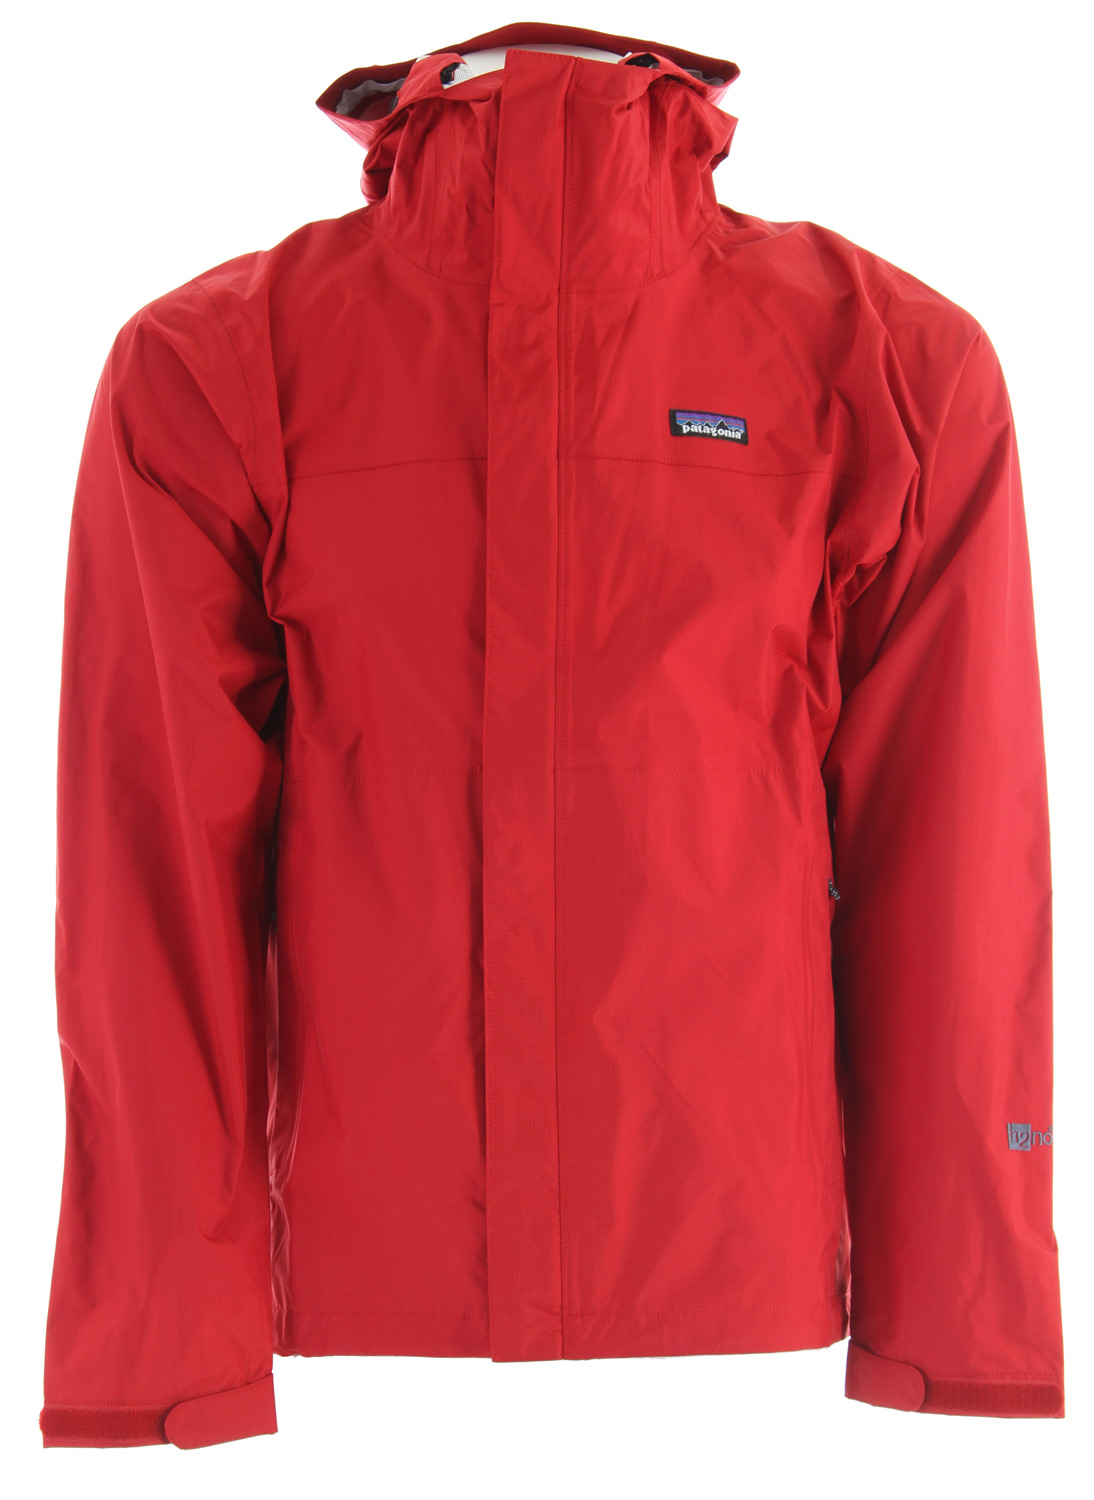 Camp and Hike The Patagonia Torrentshell durable rain jacket, made with 2.5 layer nylon ripstop and a waterproof/breathable H2No barrier is built for trekking and hiking in wet conditionsKey Features of the Patagonia Torrentshell Jacket: 2.5-layer nylon ripstop shell with a waterproof/breathable H2No barrier and Deluge DWR (durable water repellent) finish 2-way-adjustable hood with a laminated visor rolls down and stows Microfleece-lined neck for comfort and enhanced protection of waterproof/breathable barrier Center-front-zipper has exterior and interior storm flaps to keep water out; pit zips have storm flaps and Deluge DWR-treated zippers Self-fabric hook-and-loop cuff closures Pockets: Two handwarmers; one internal mesh drop-in; stows in left hand pocket Drawcord hem Regular fit (13.1 oz) 371 g Fabric: 2.5-layer, 2.6-oz 50-denier 100% nylon ripstop with a waterproof/breathable H2No barrier and a Deluge DWR finish - $82.95